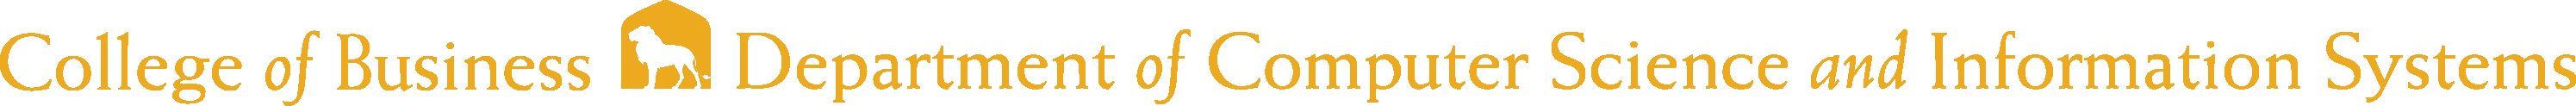 College of Business - Computer Science and Information Systems Logo - Gold - Version 2